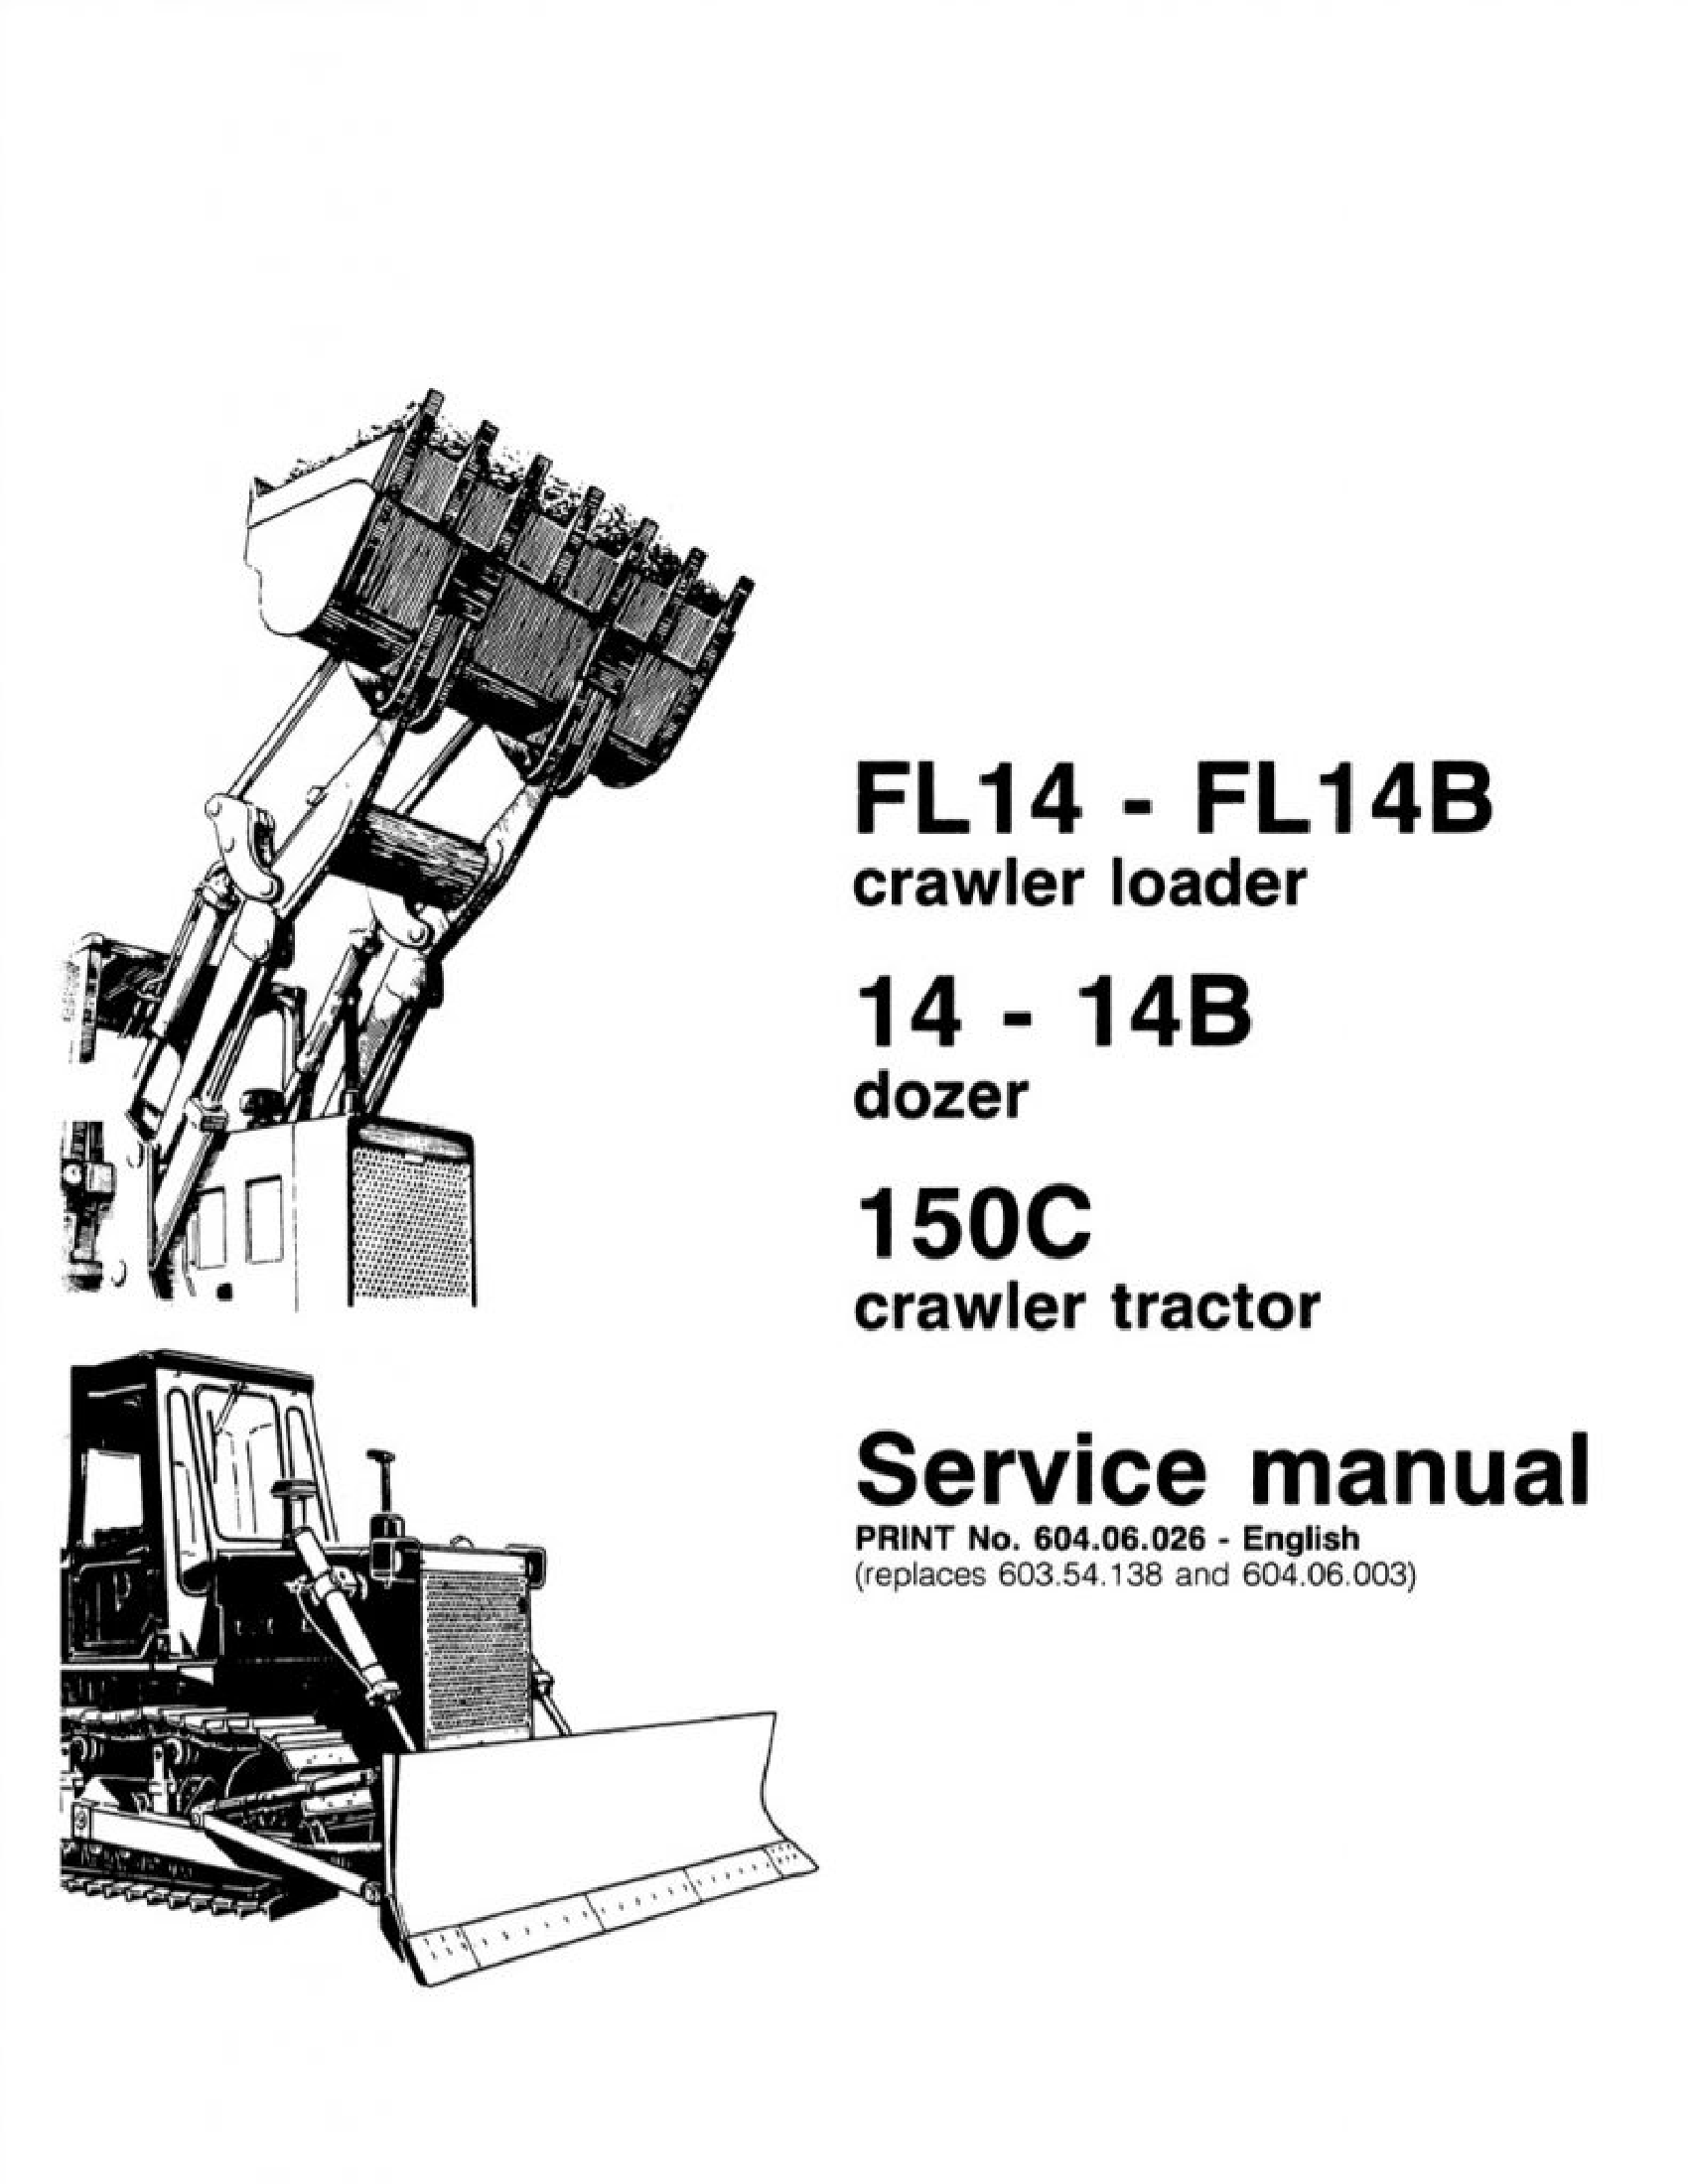 Fiat-Allis 14 FL FL manual